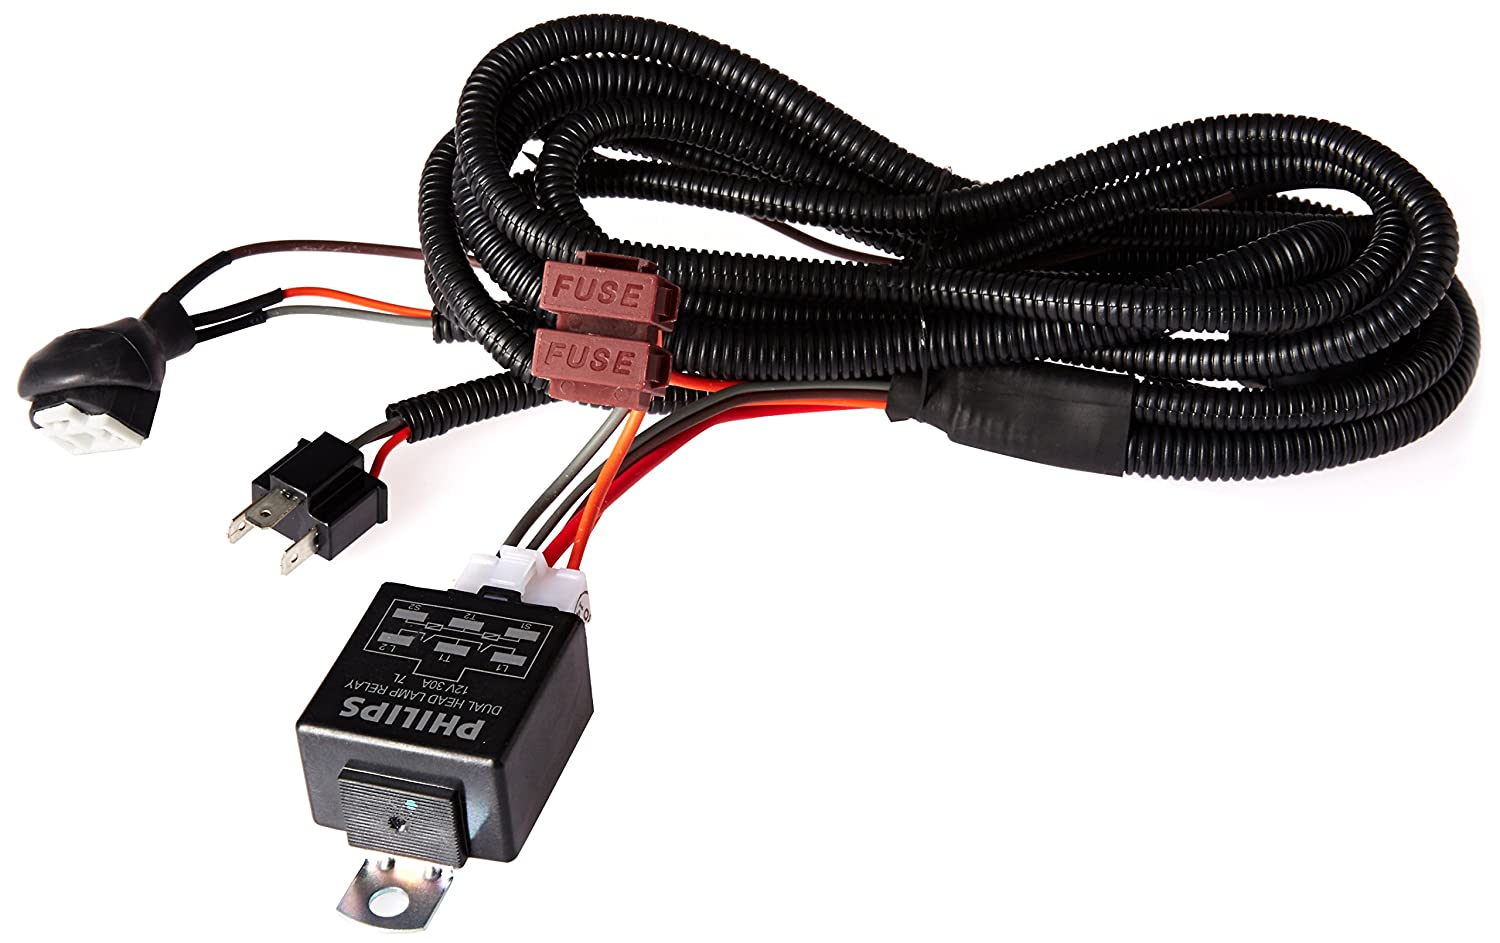 Philips 12003xm H4 Heavy Duty Relay Wiring Kit For High Power 100 Harness Suppliers India 90w Or 130 100w Car Motorbike